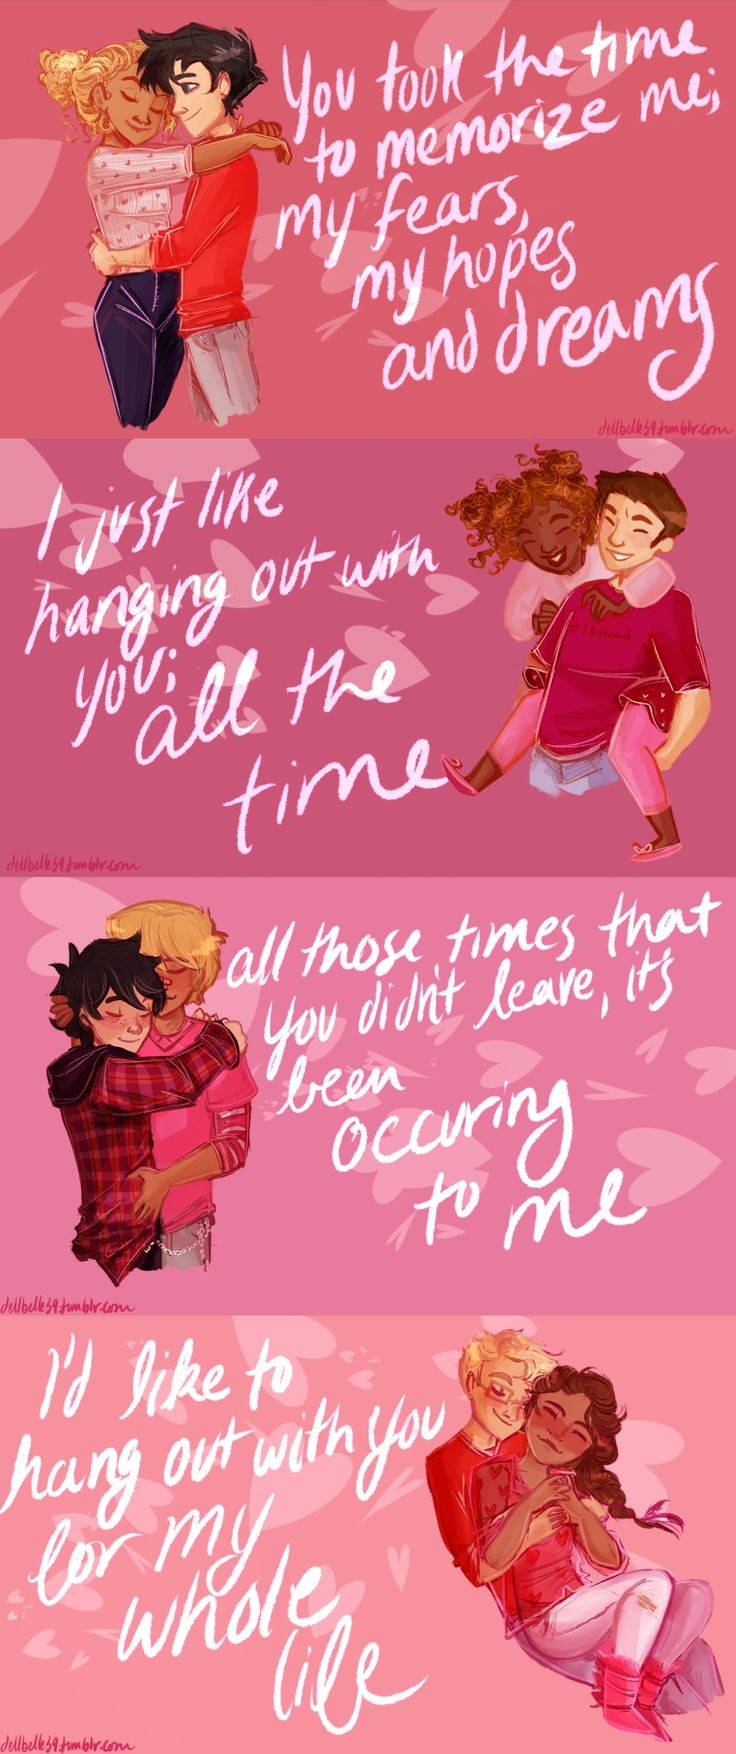 Stay; and I'll be loving you for quite some time | art by dellbelle39